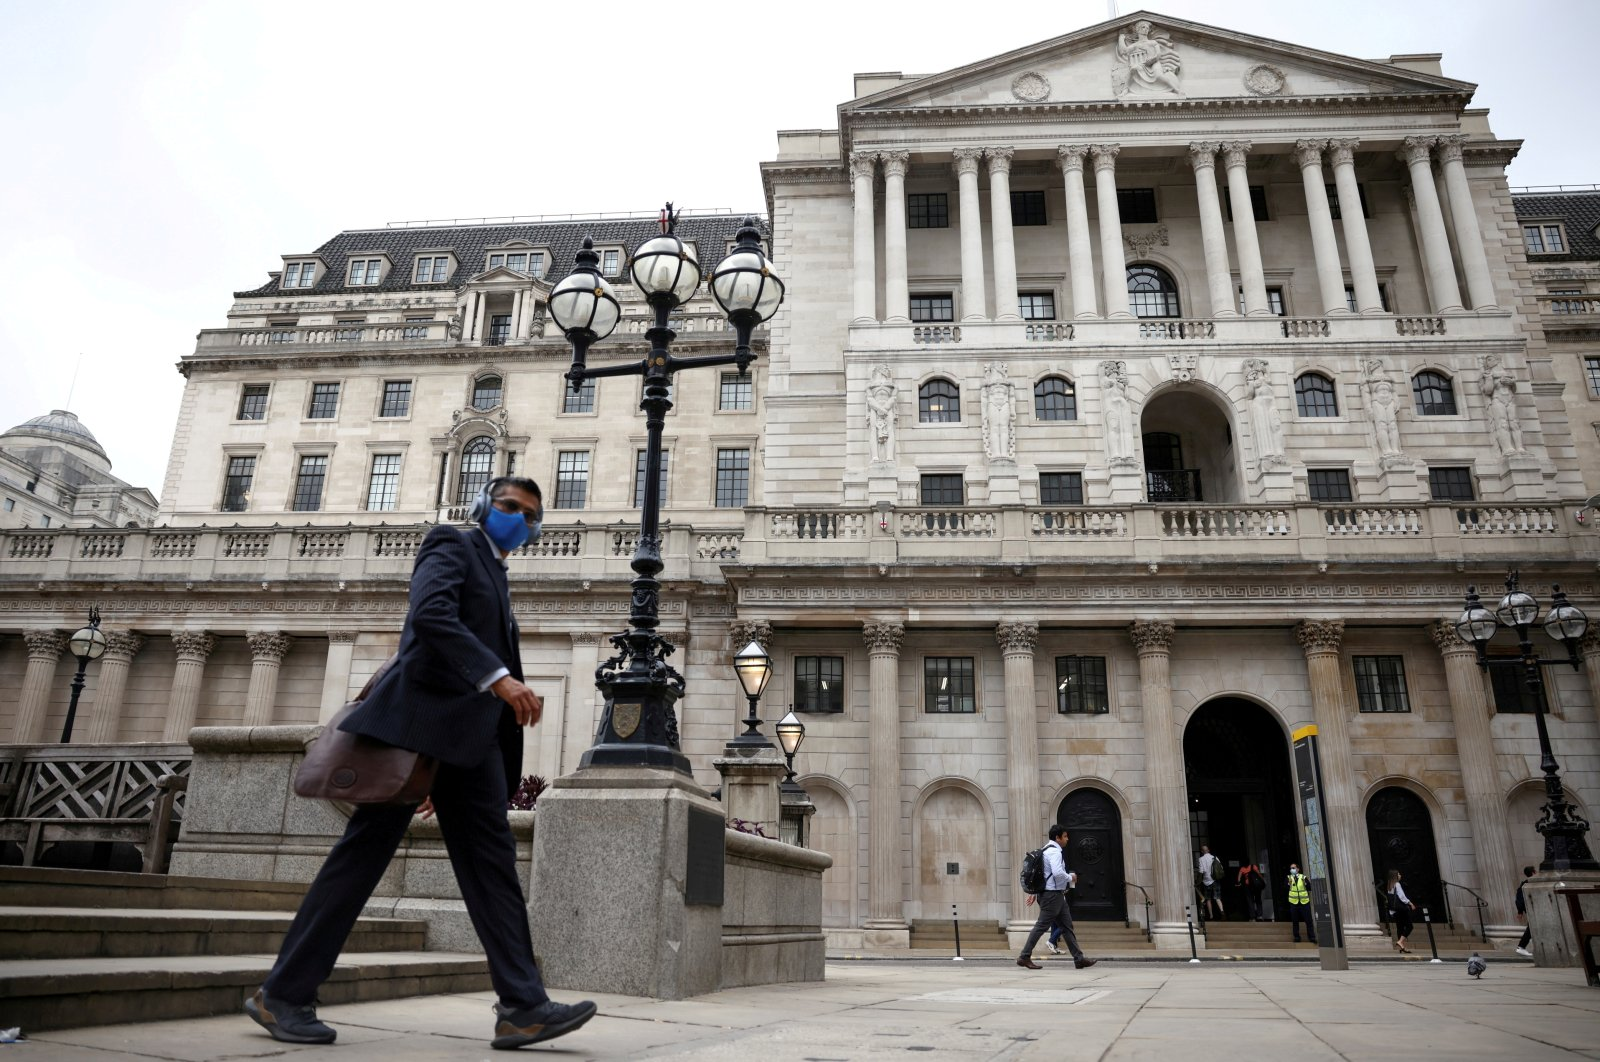 A person walks past the Bank of England in the City of London financial district, in London, Britain, June 11, 2021. (REUTERS/Henry Nicholls/File Photo)